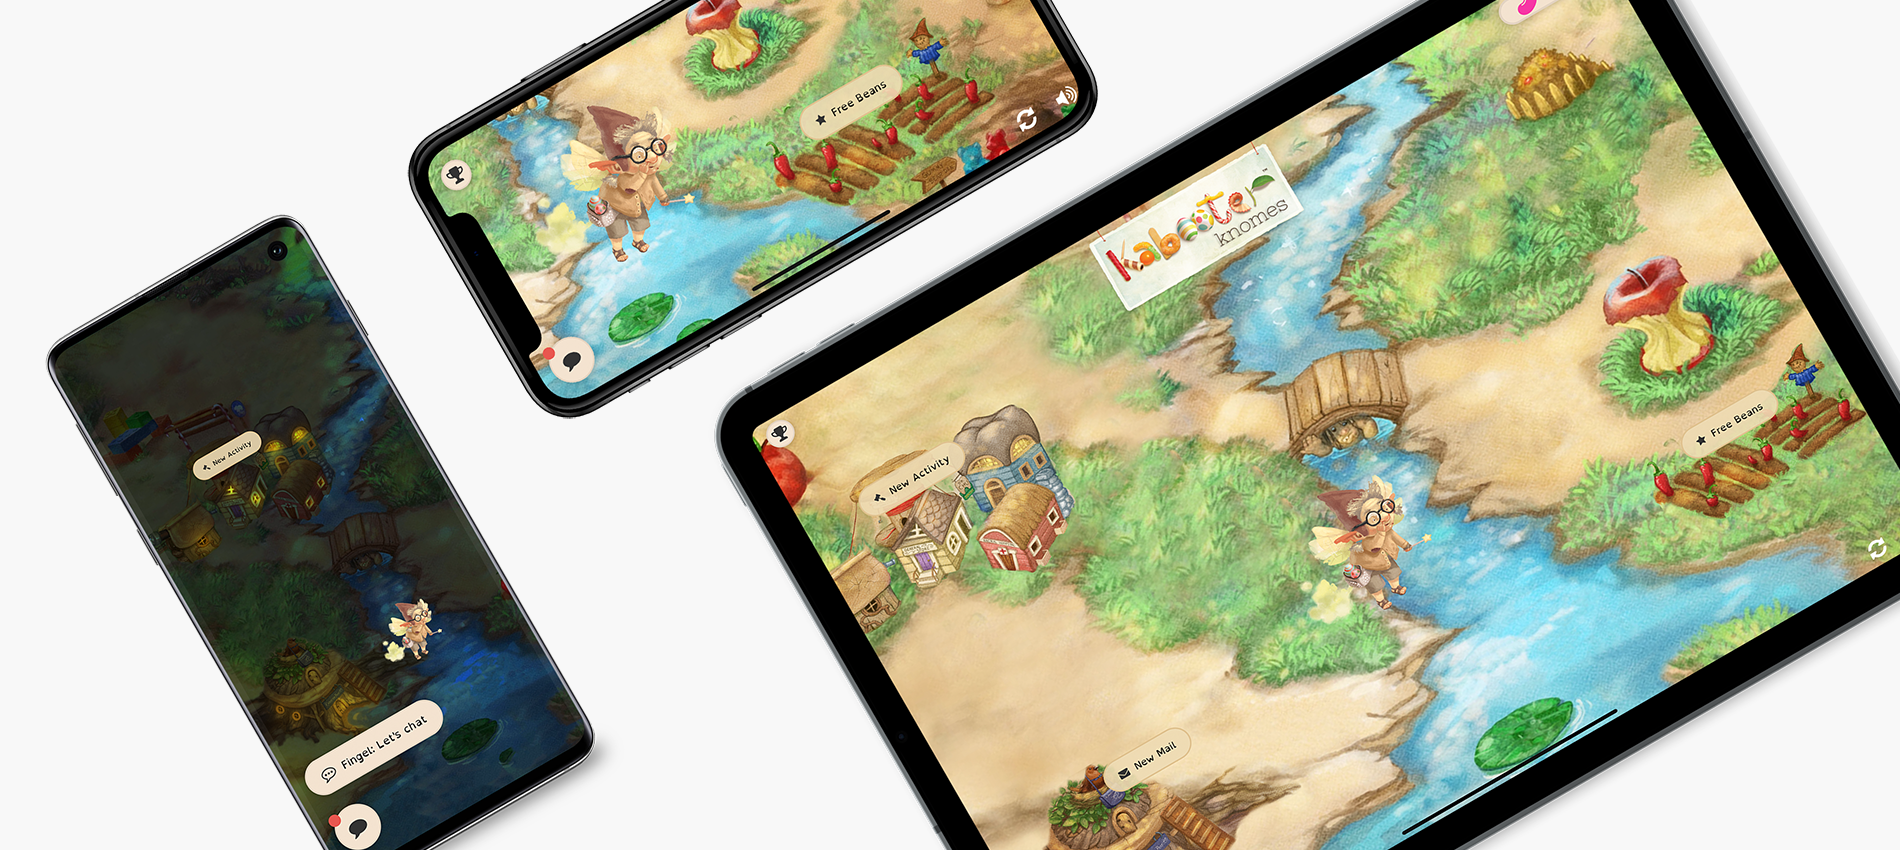 Kabooter Knomes mobile app development screen mockups of city in game